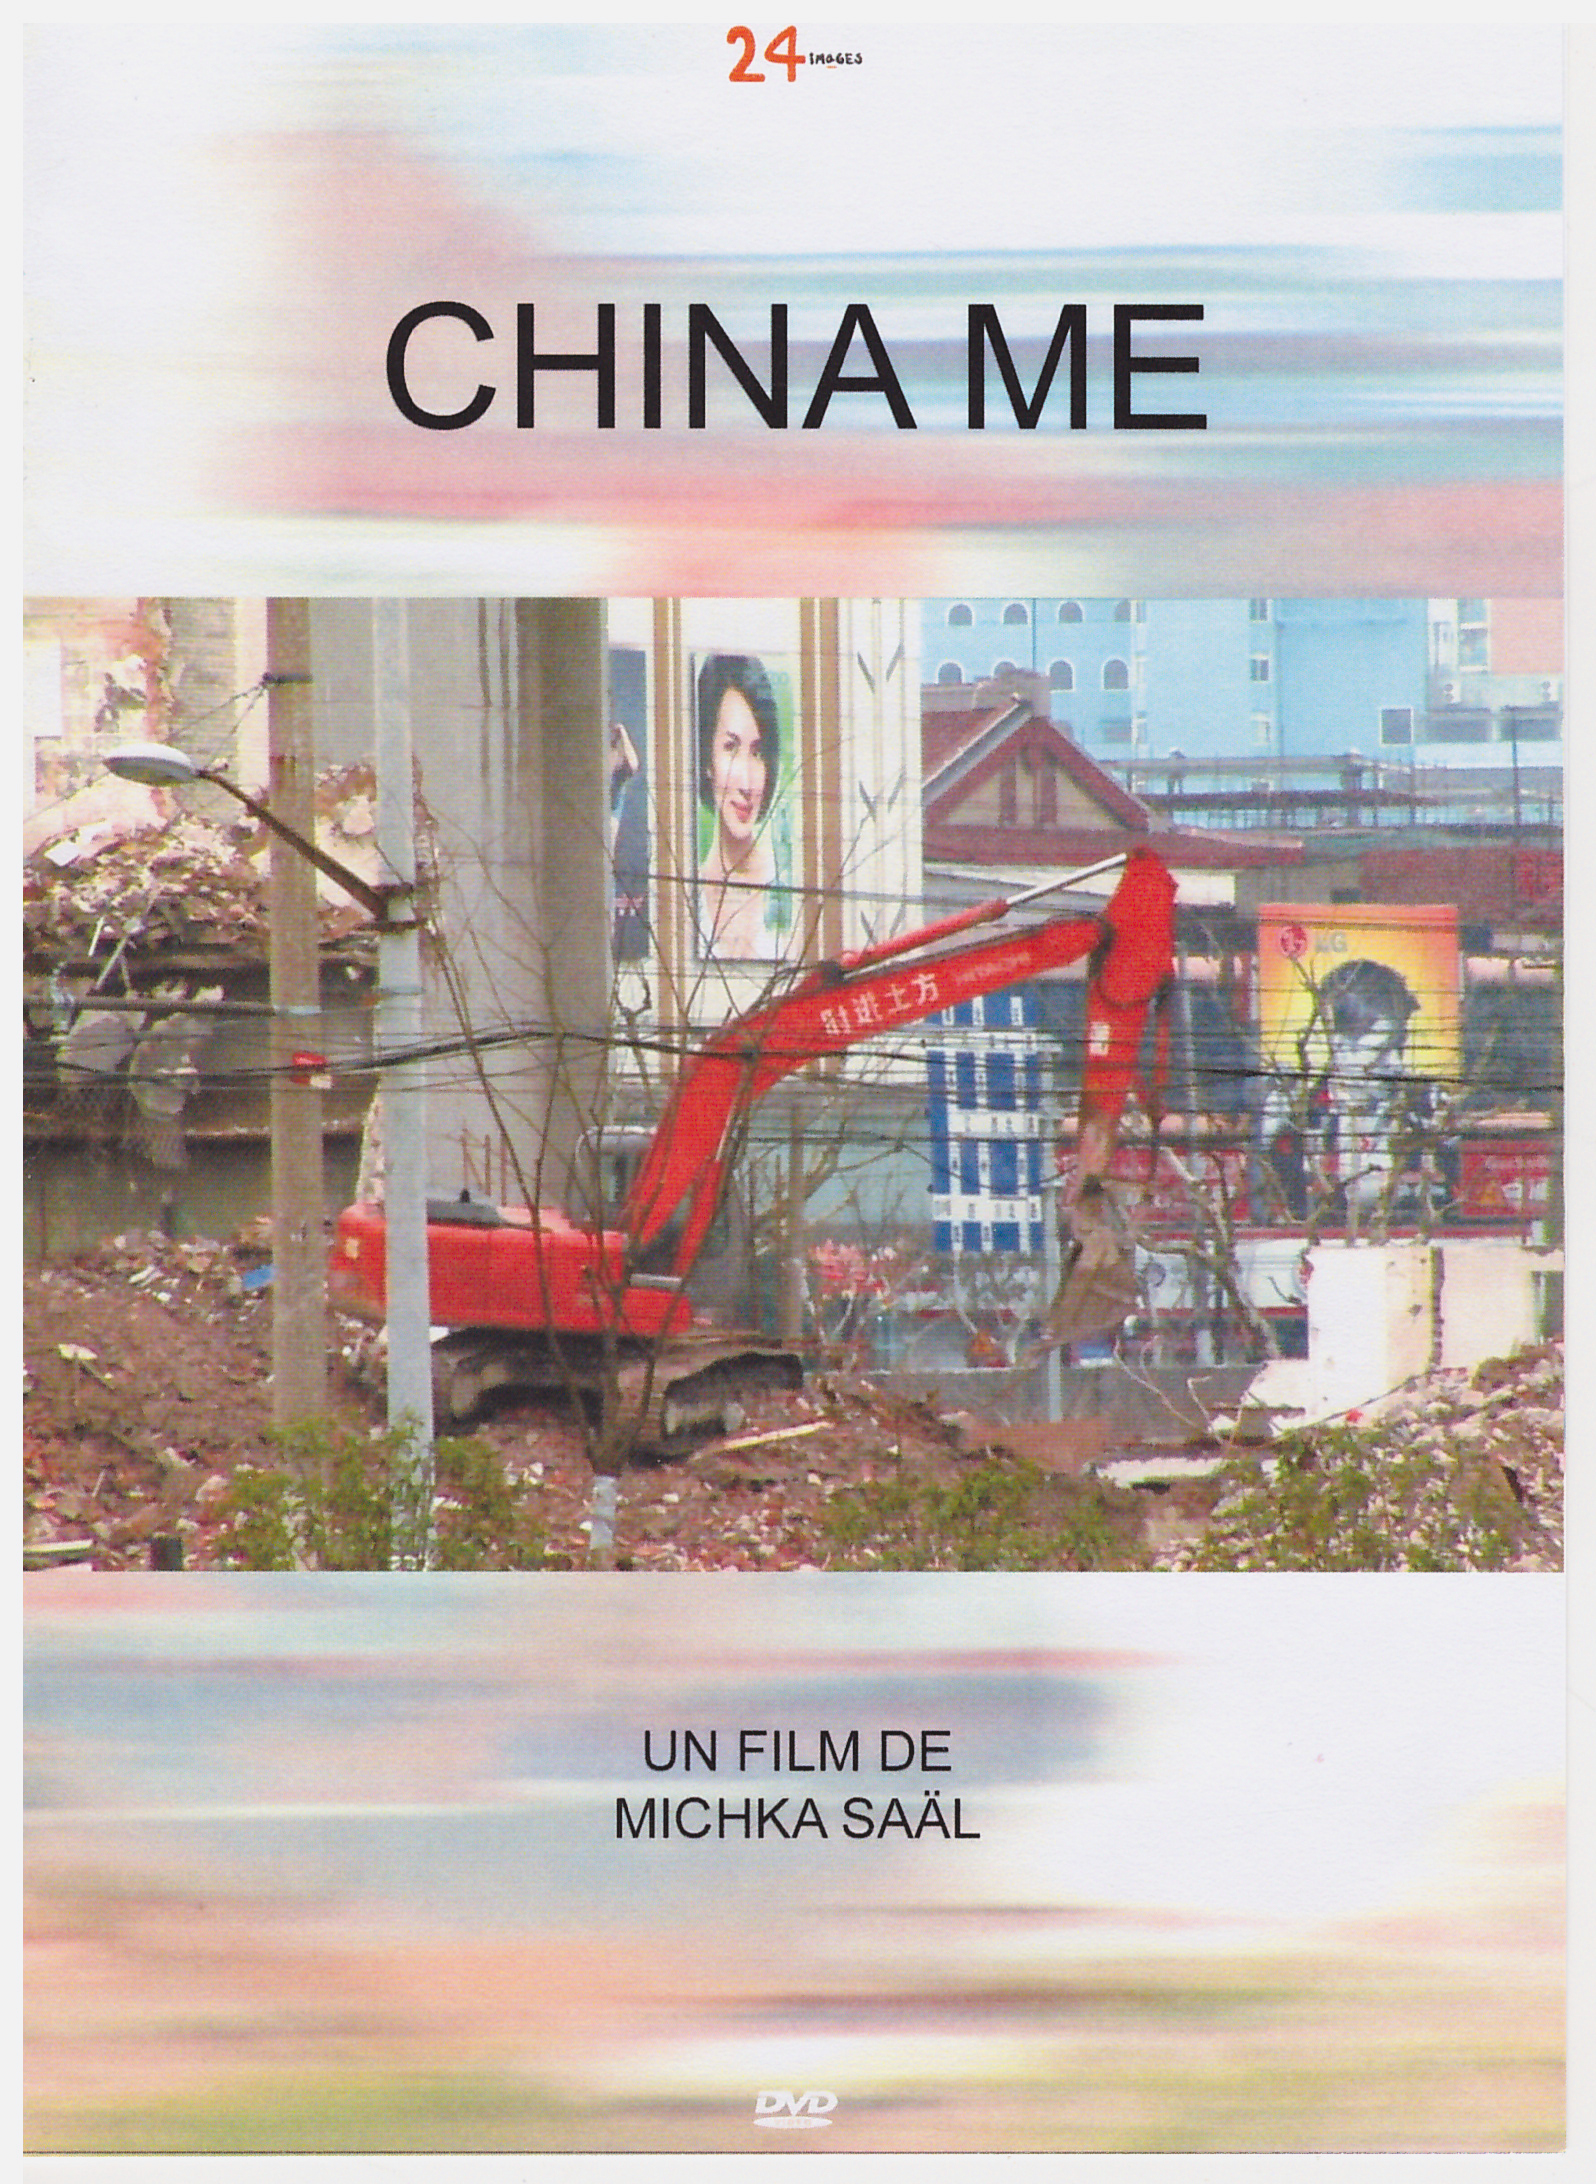 China Me dvd cover.jpg